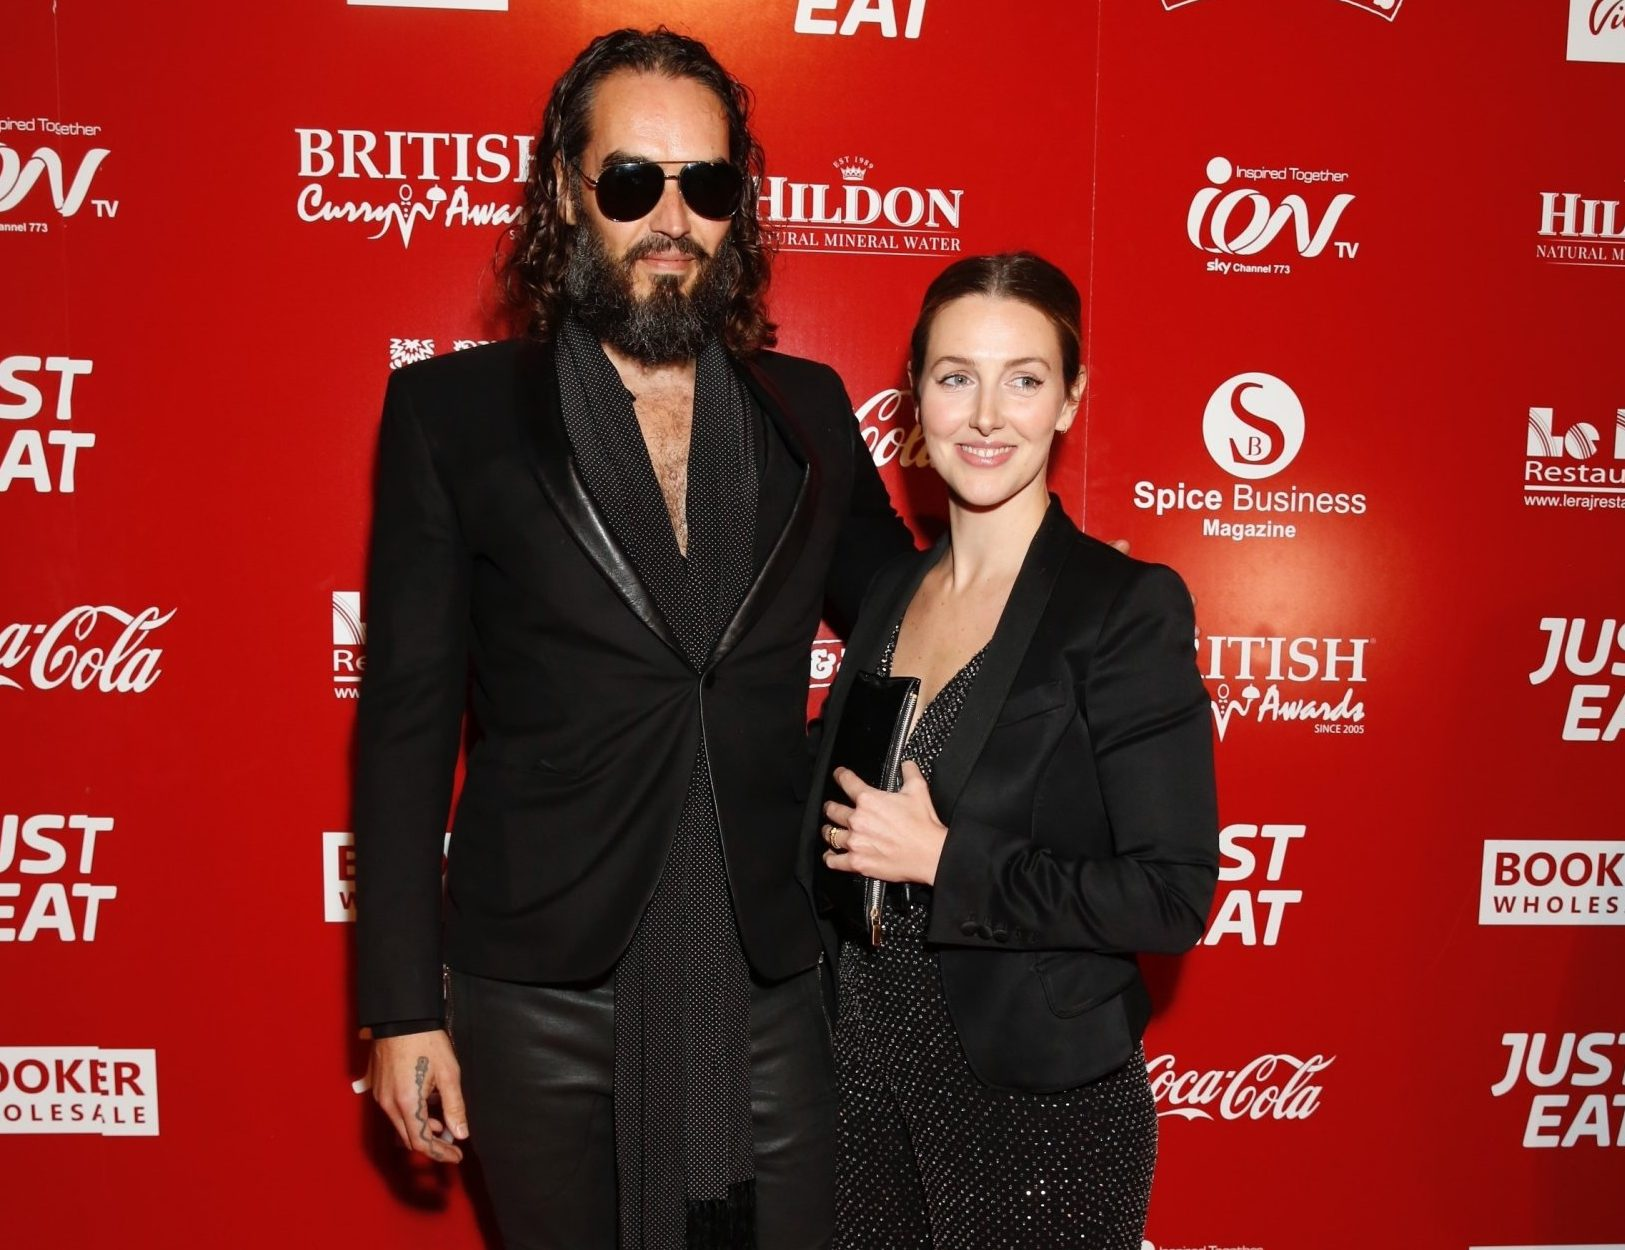 Russell Brand and wife Laura Gallacher look smitten as they make red carpet debut at British Curry Awards